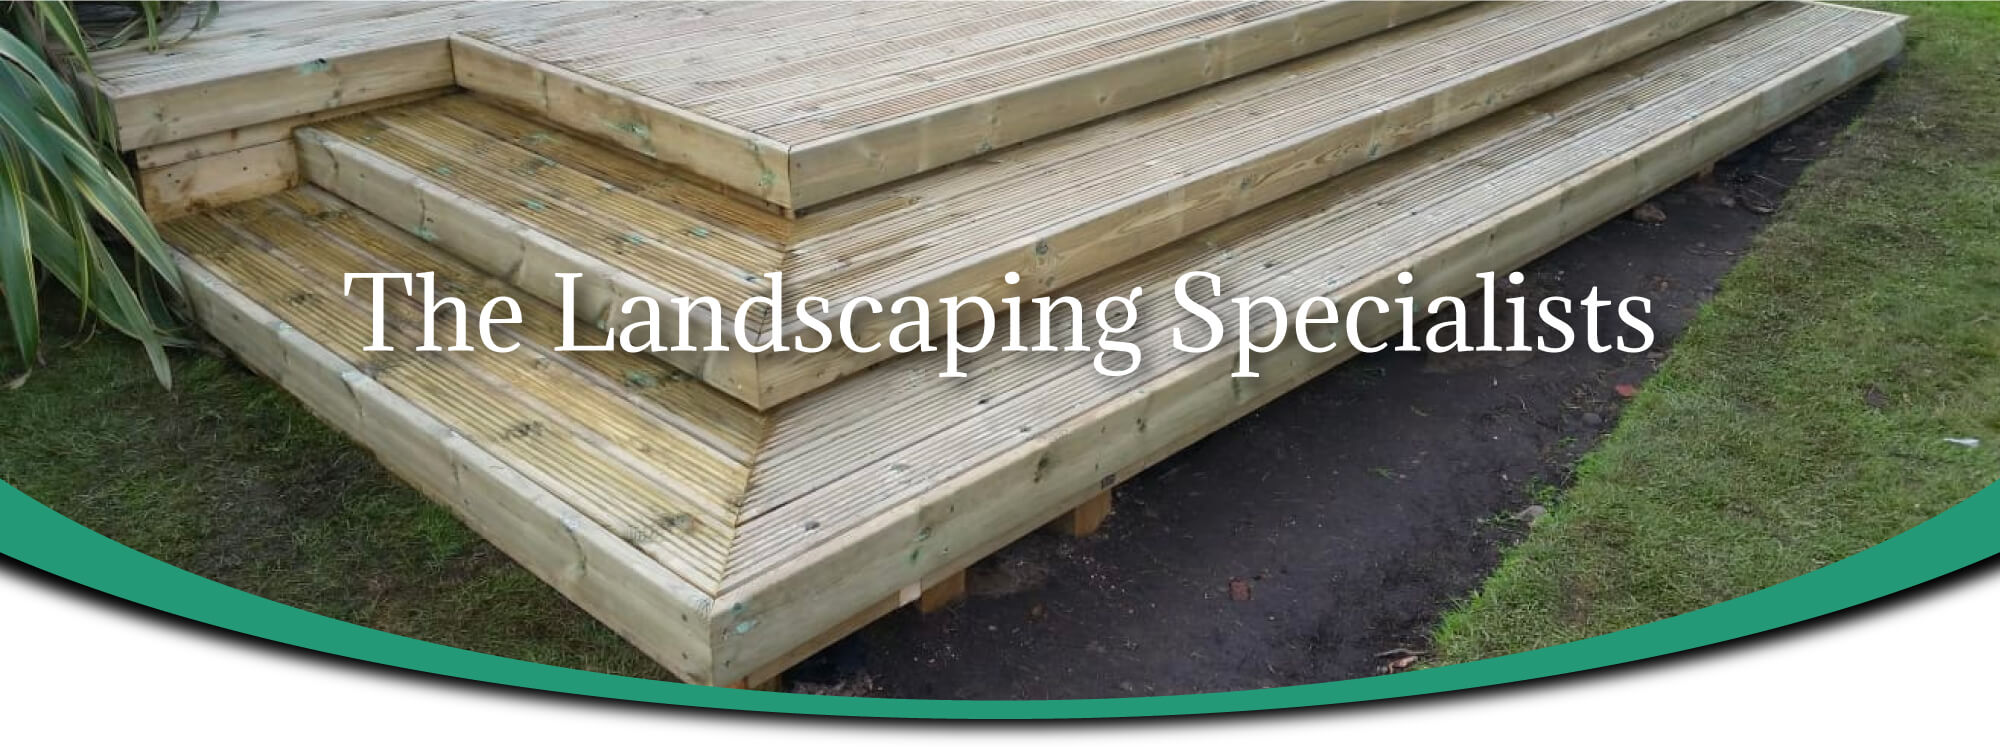 Wooden decking with steps